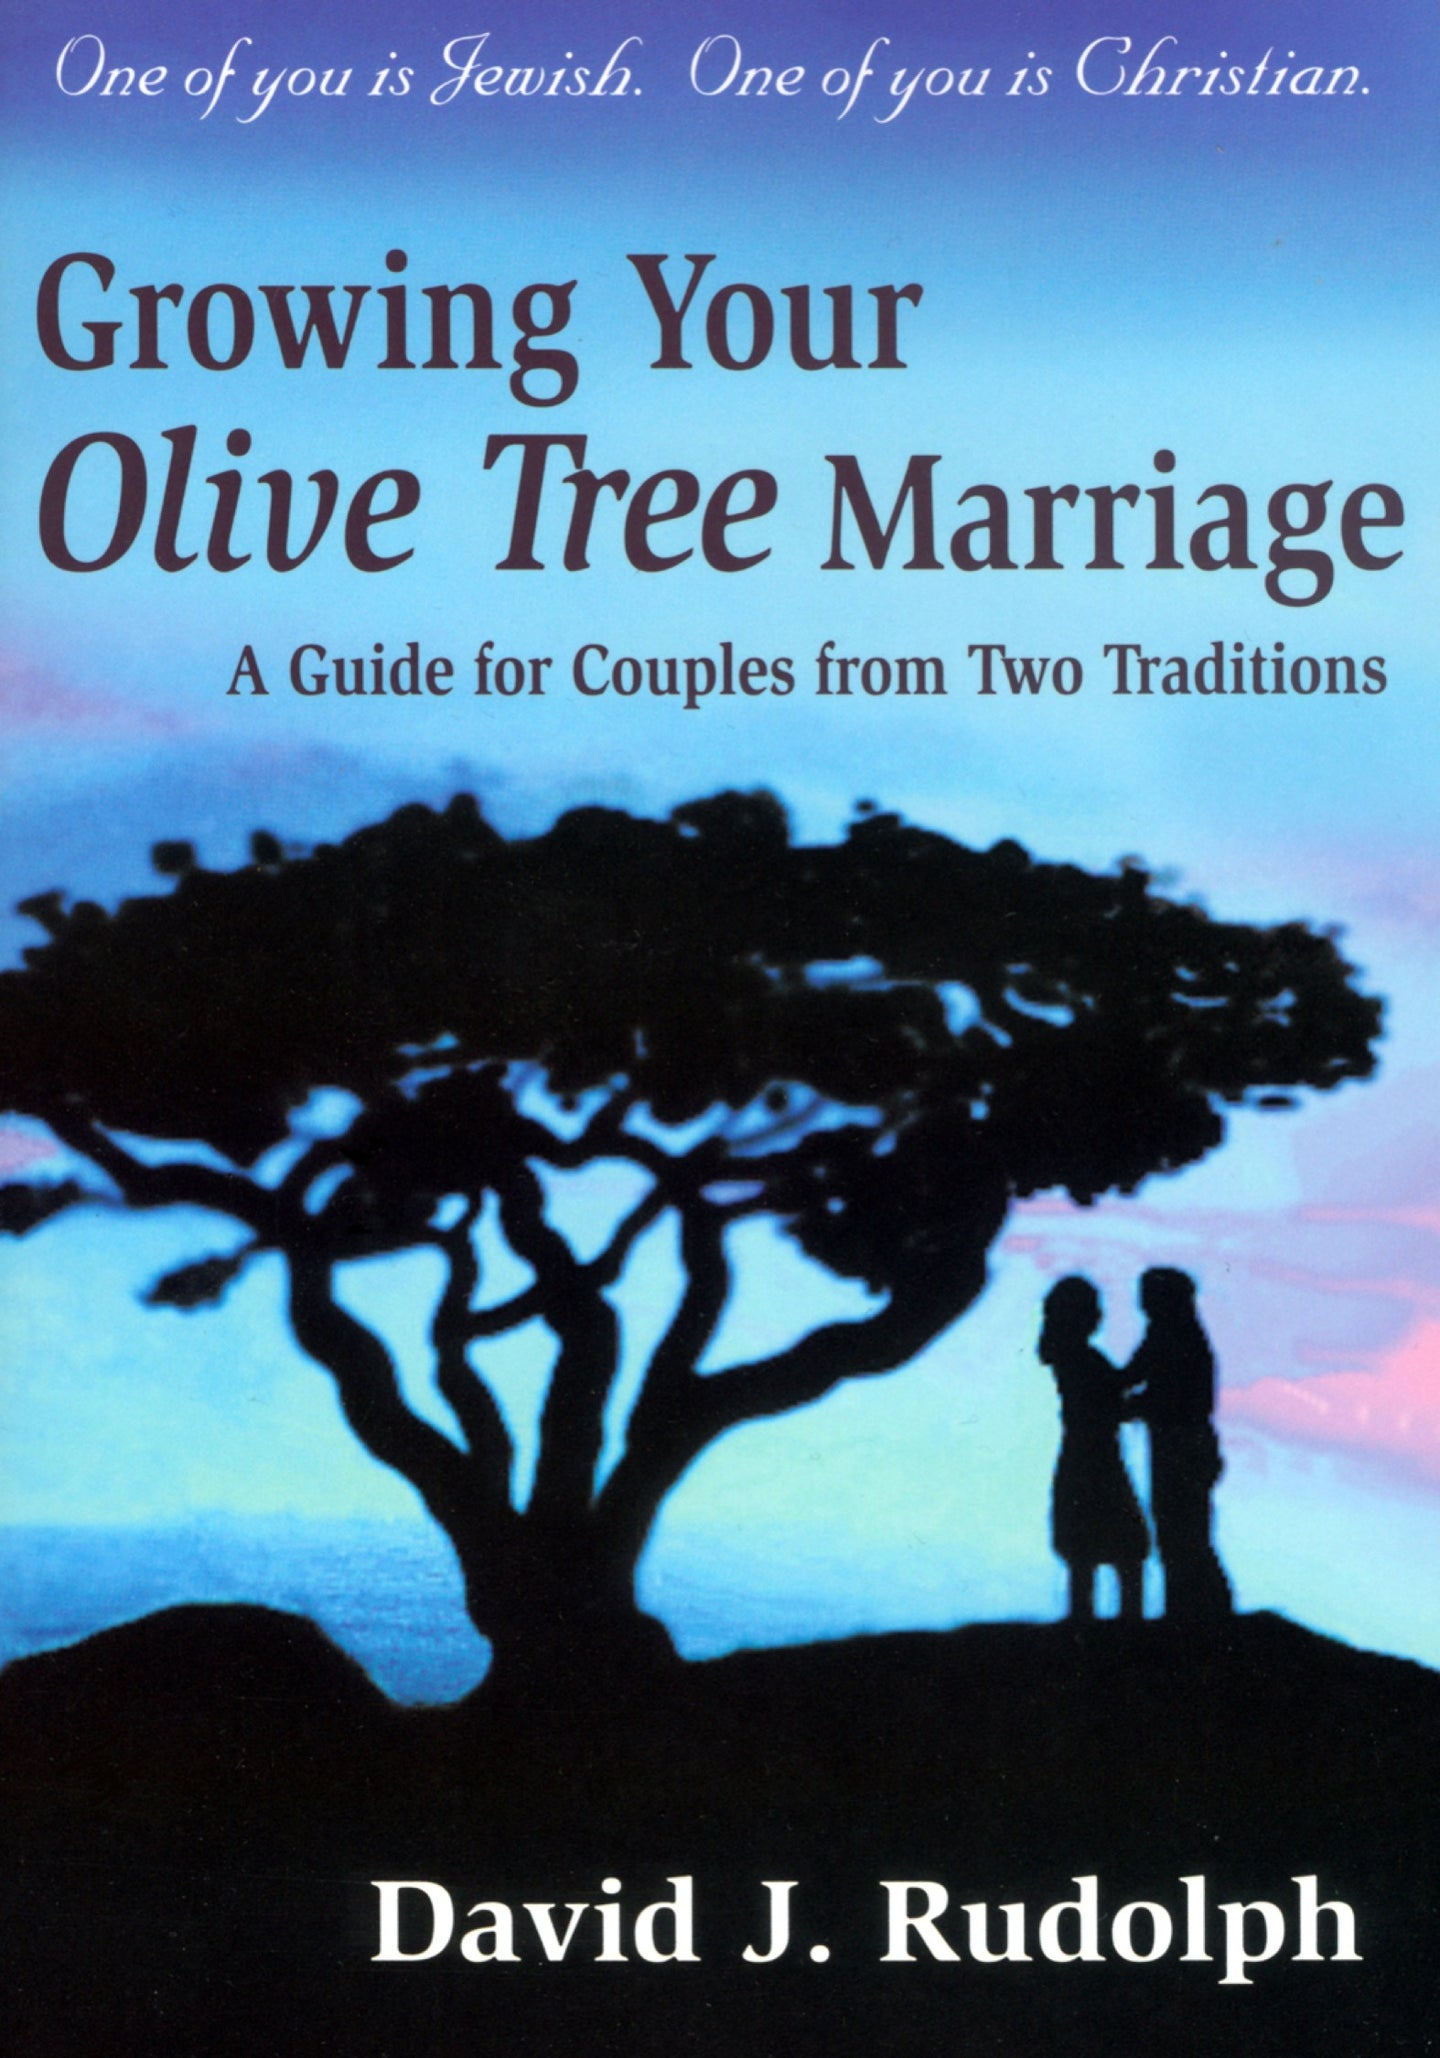 Growing Your Olive Tree Marriage:A Guide for Couples from Two Traditions by David J. Rudolph